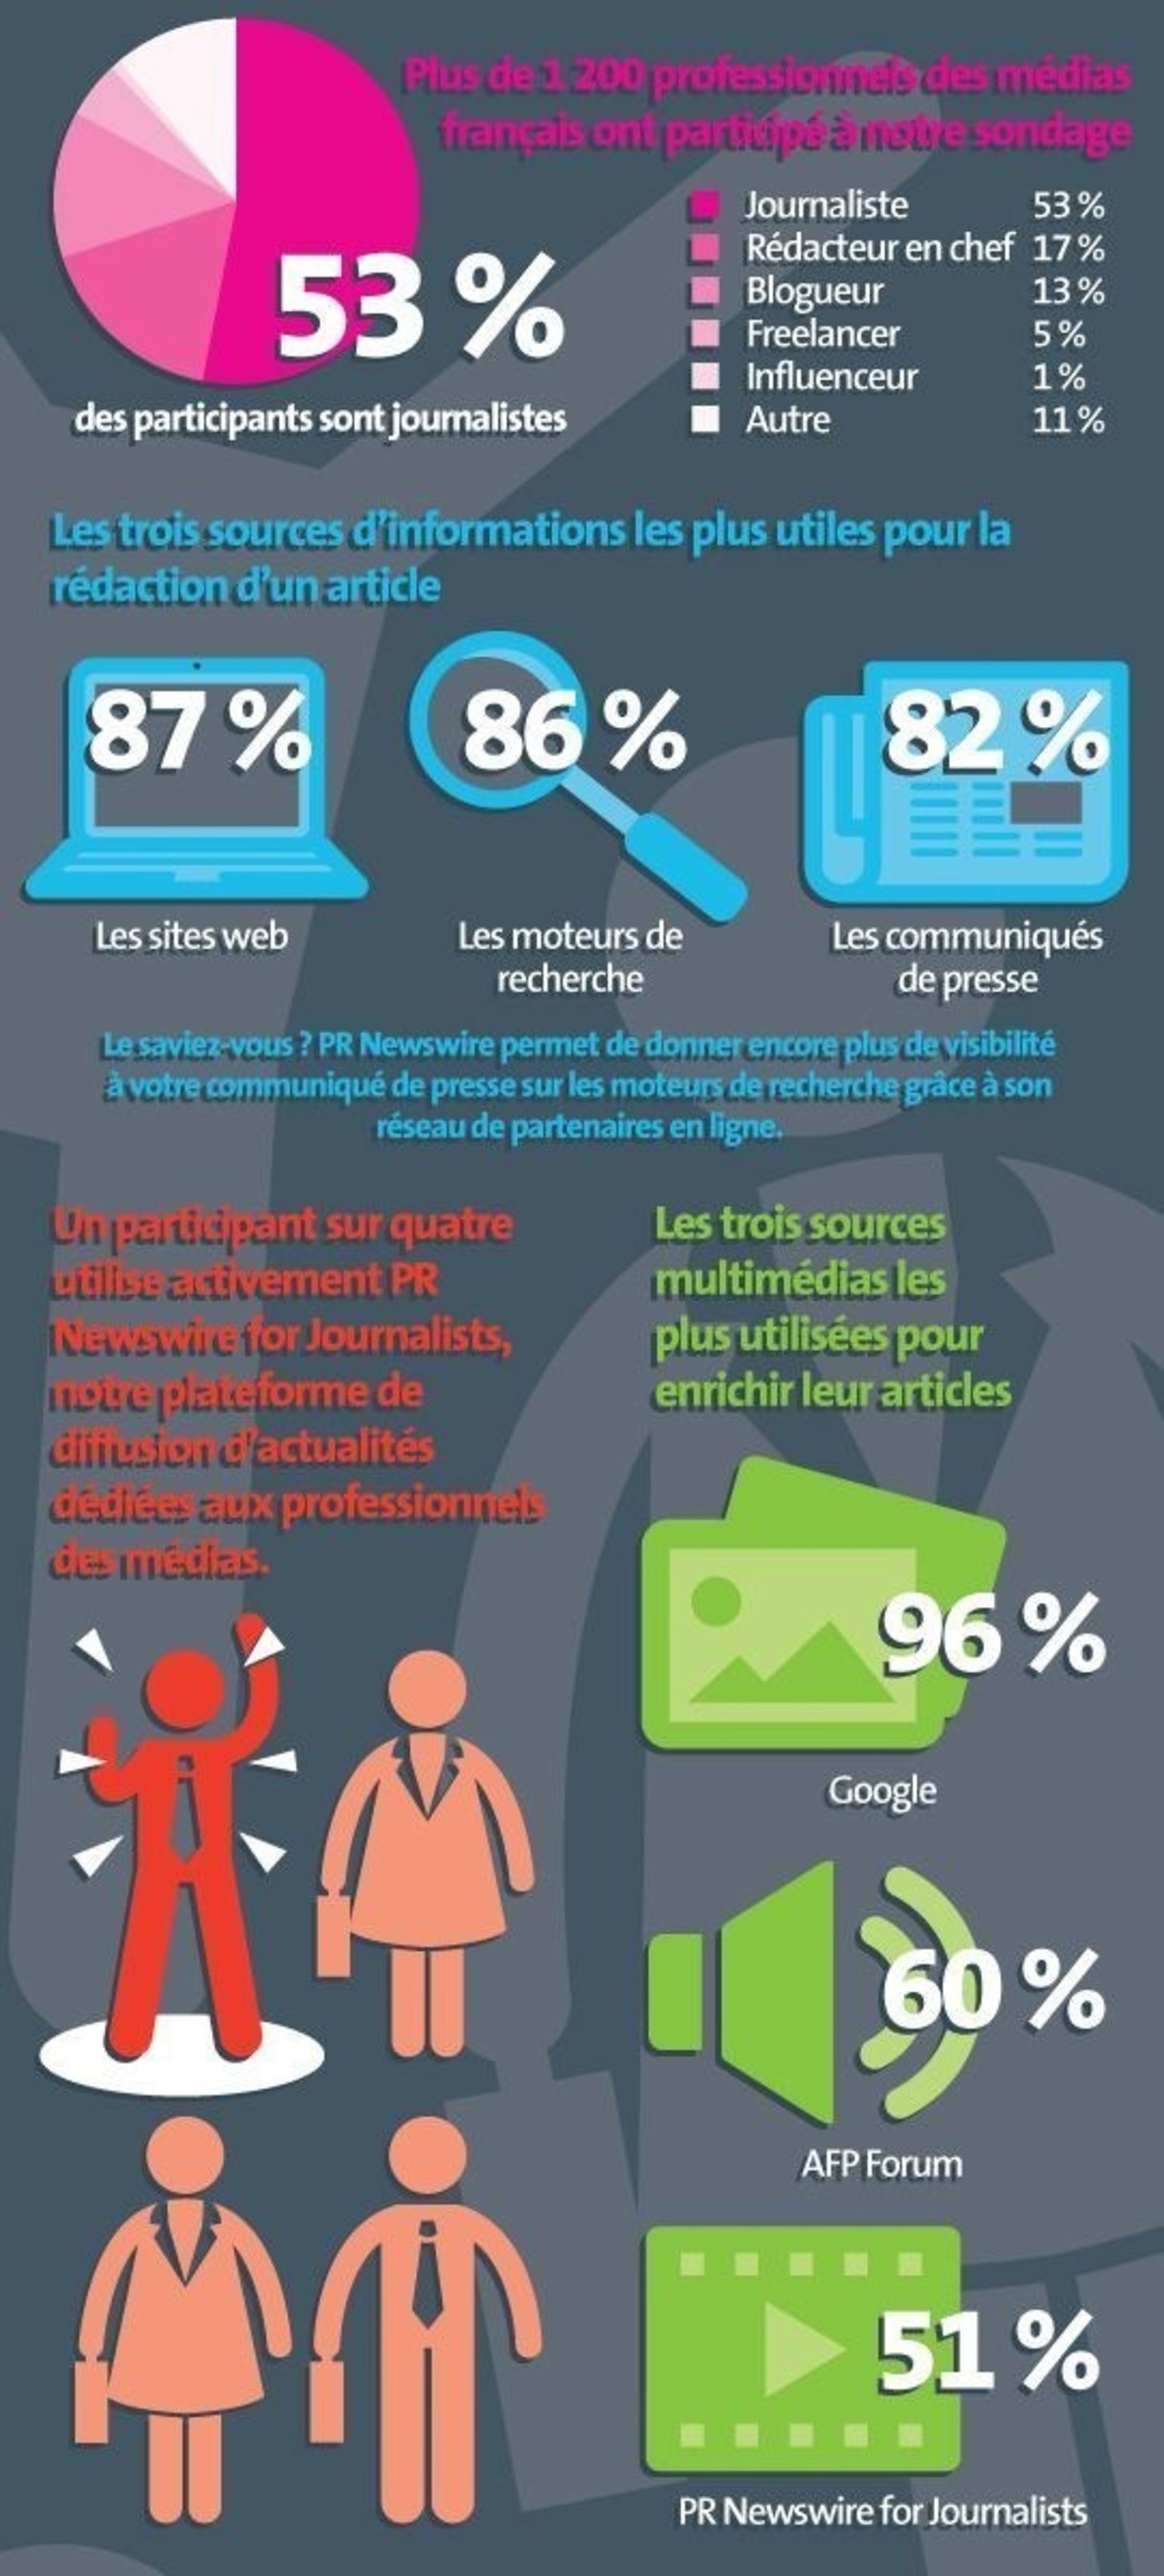 'Infographic depicting the results of PR Newswire's survey of French media professionals'. ...